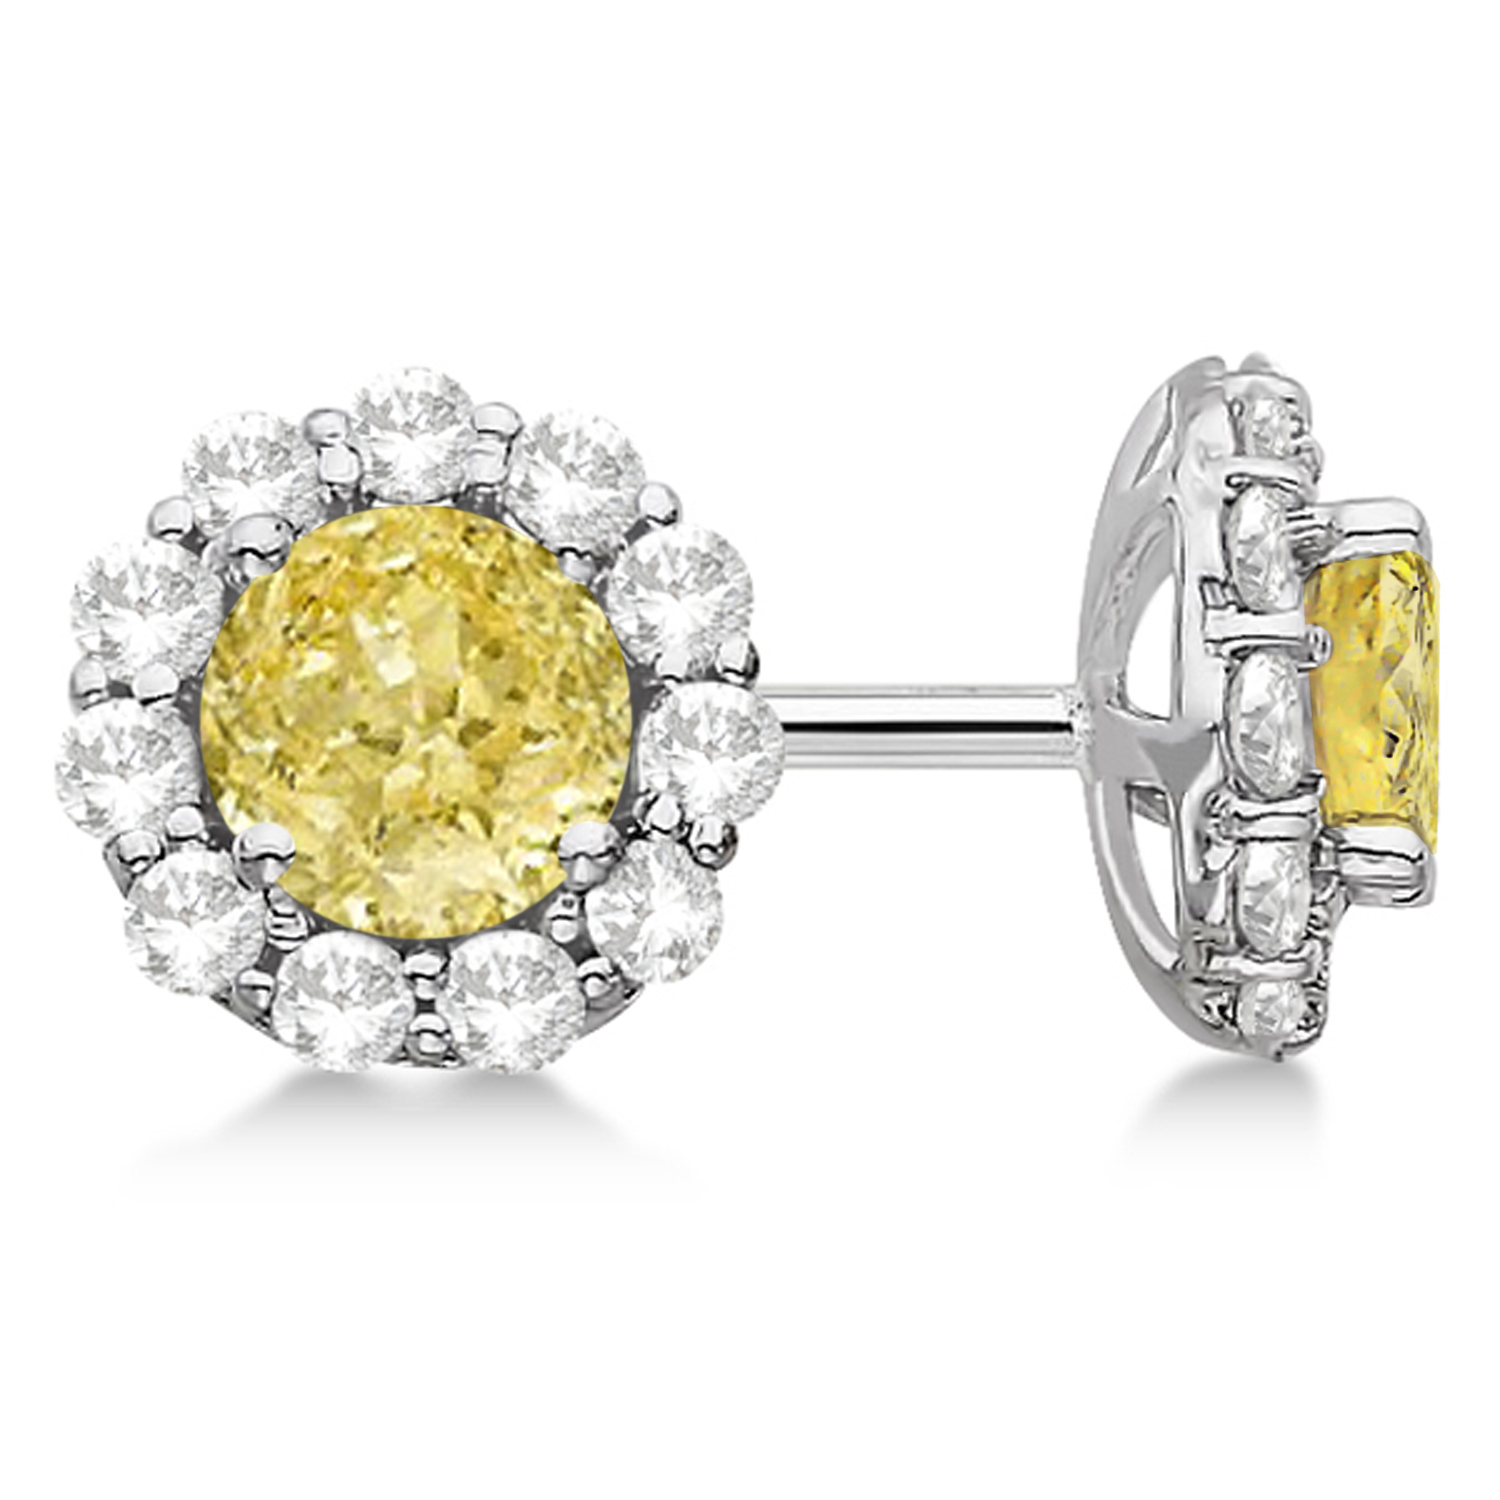 earrings sterling silver canary p yellow diamond